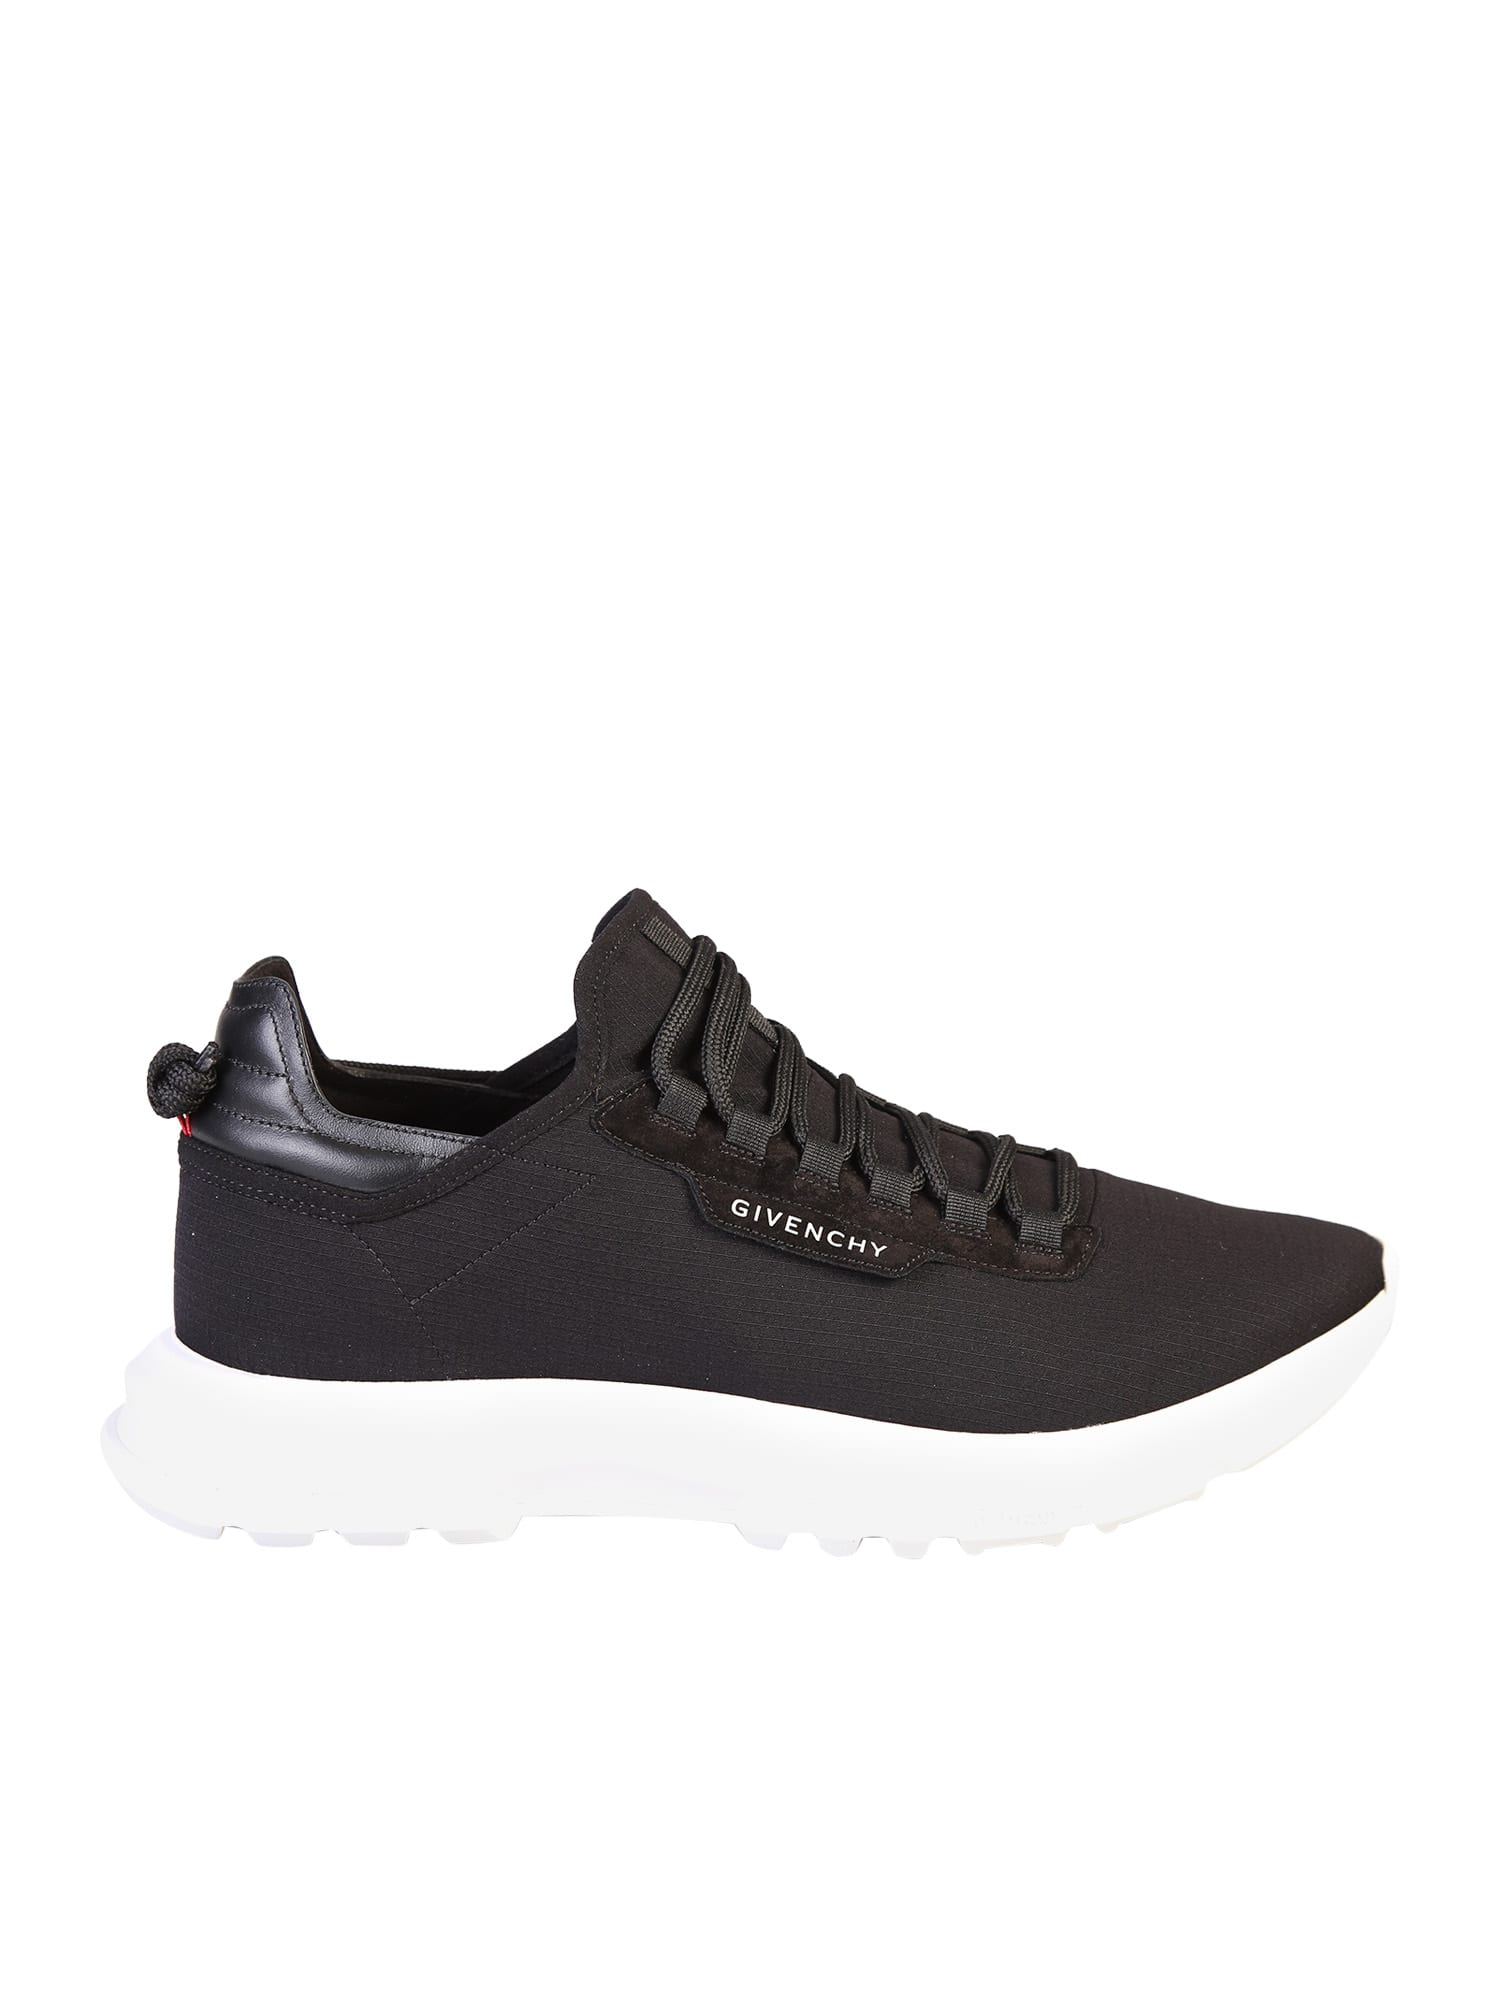 Givenchy BRANDED SNEAKERS